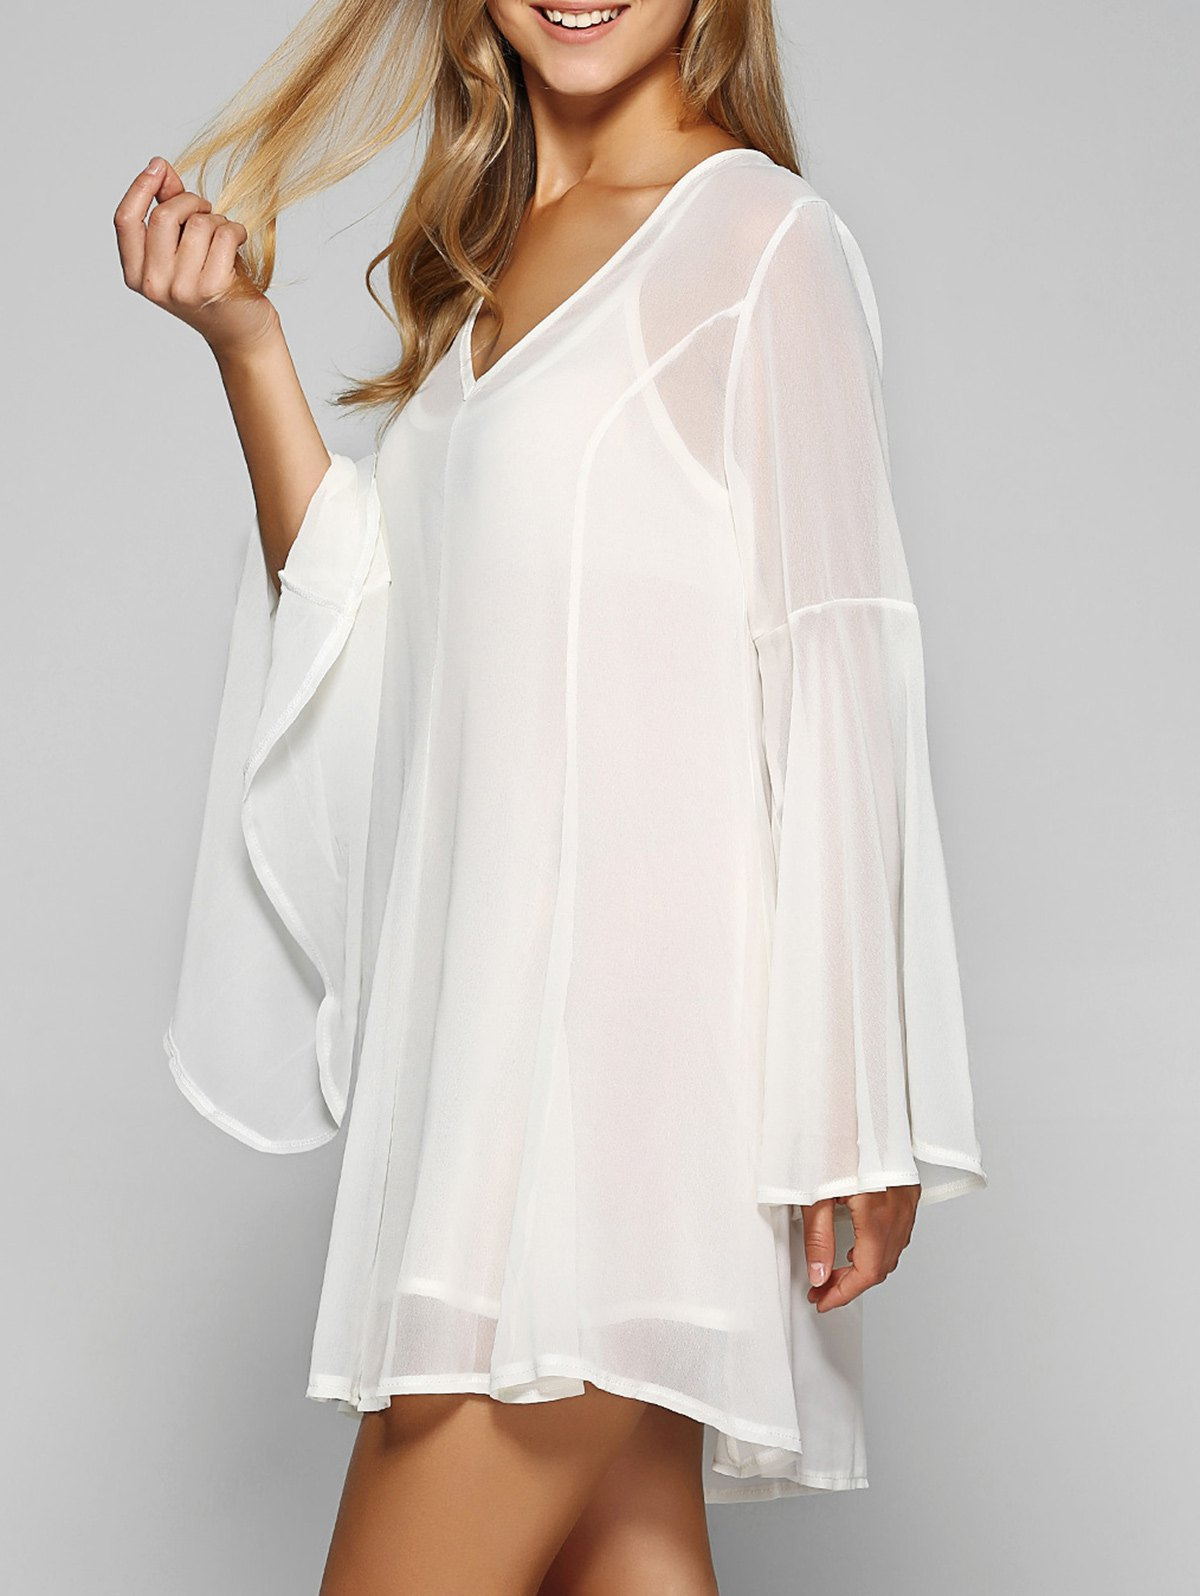 Fashion Mini Chiffon Flare Long Sleeve Swing Tunic Dress